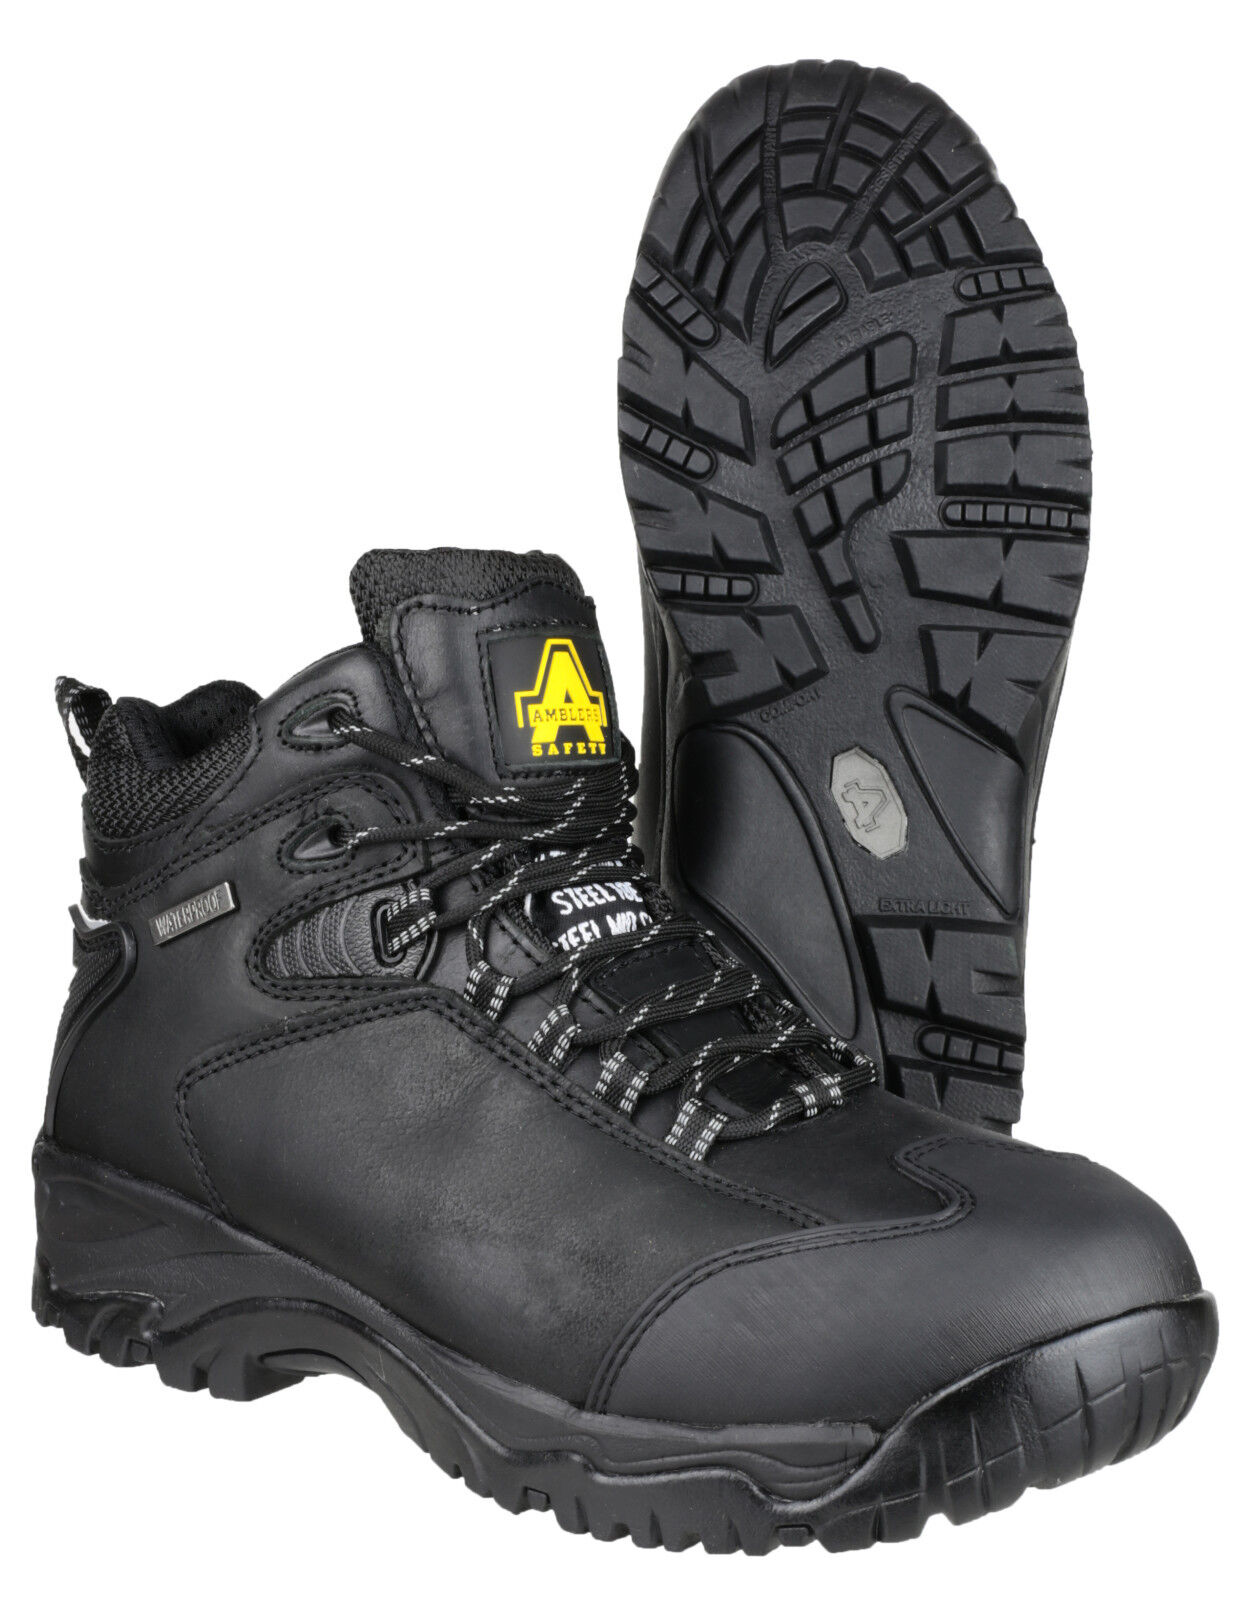 KAYLAND ROVER GTX Stone - Size 44 - NUOVE - offer 018015215 - Trekking offer - 399c10